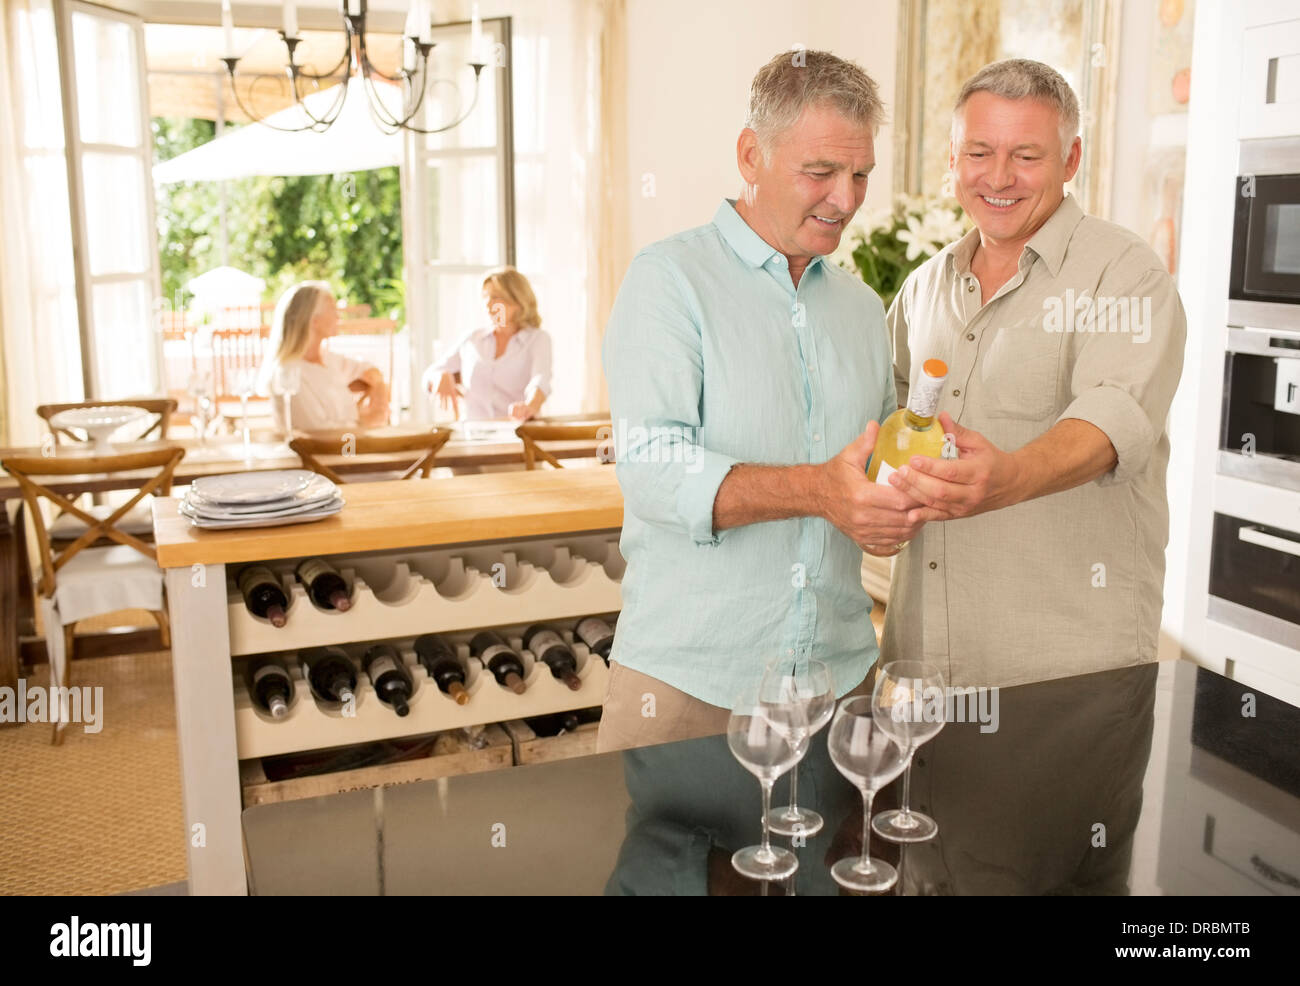 Senior me looking at wine bottle in kitchen Stock Photo